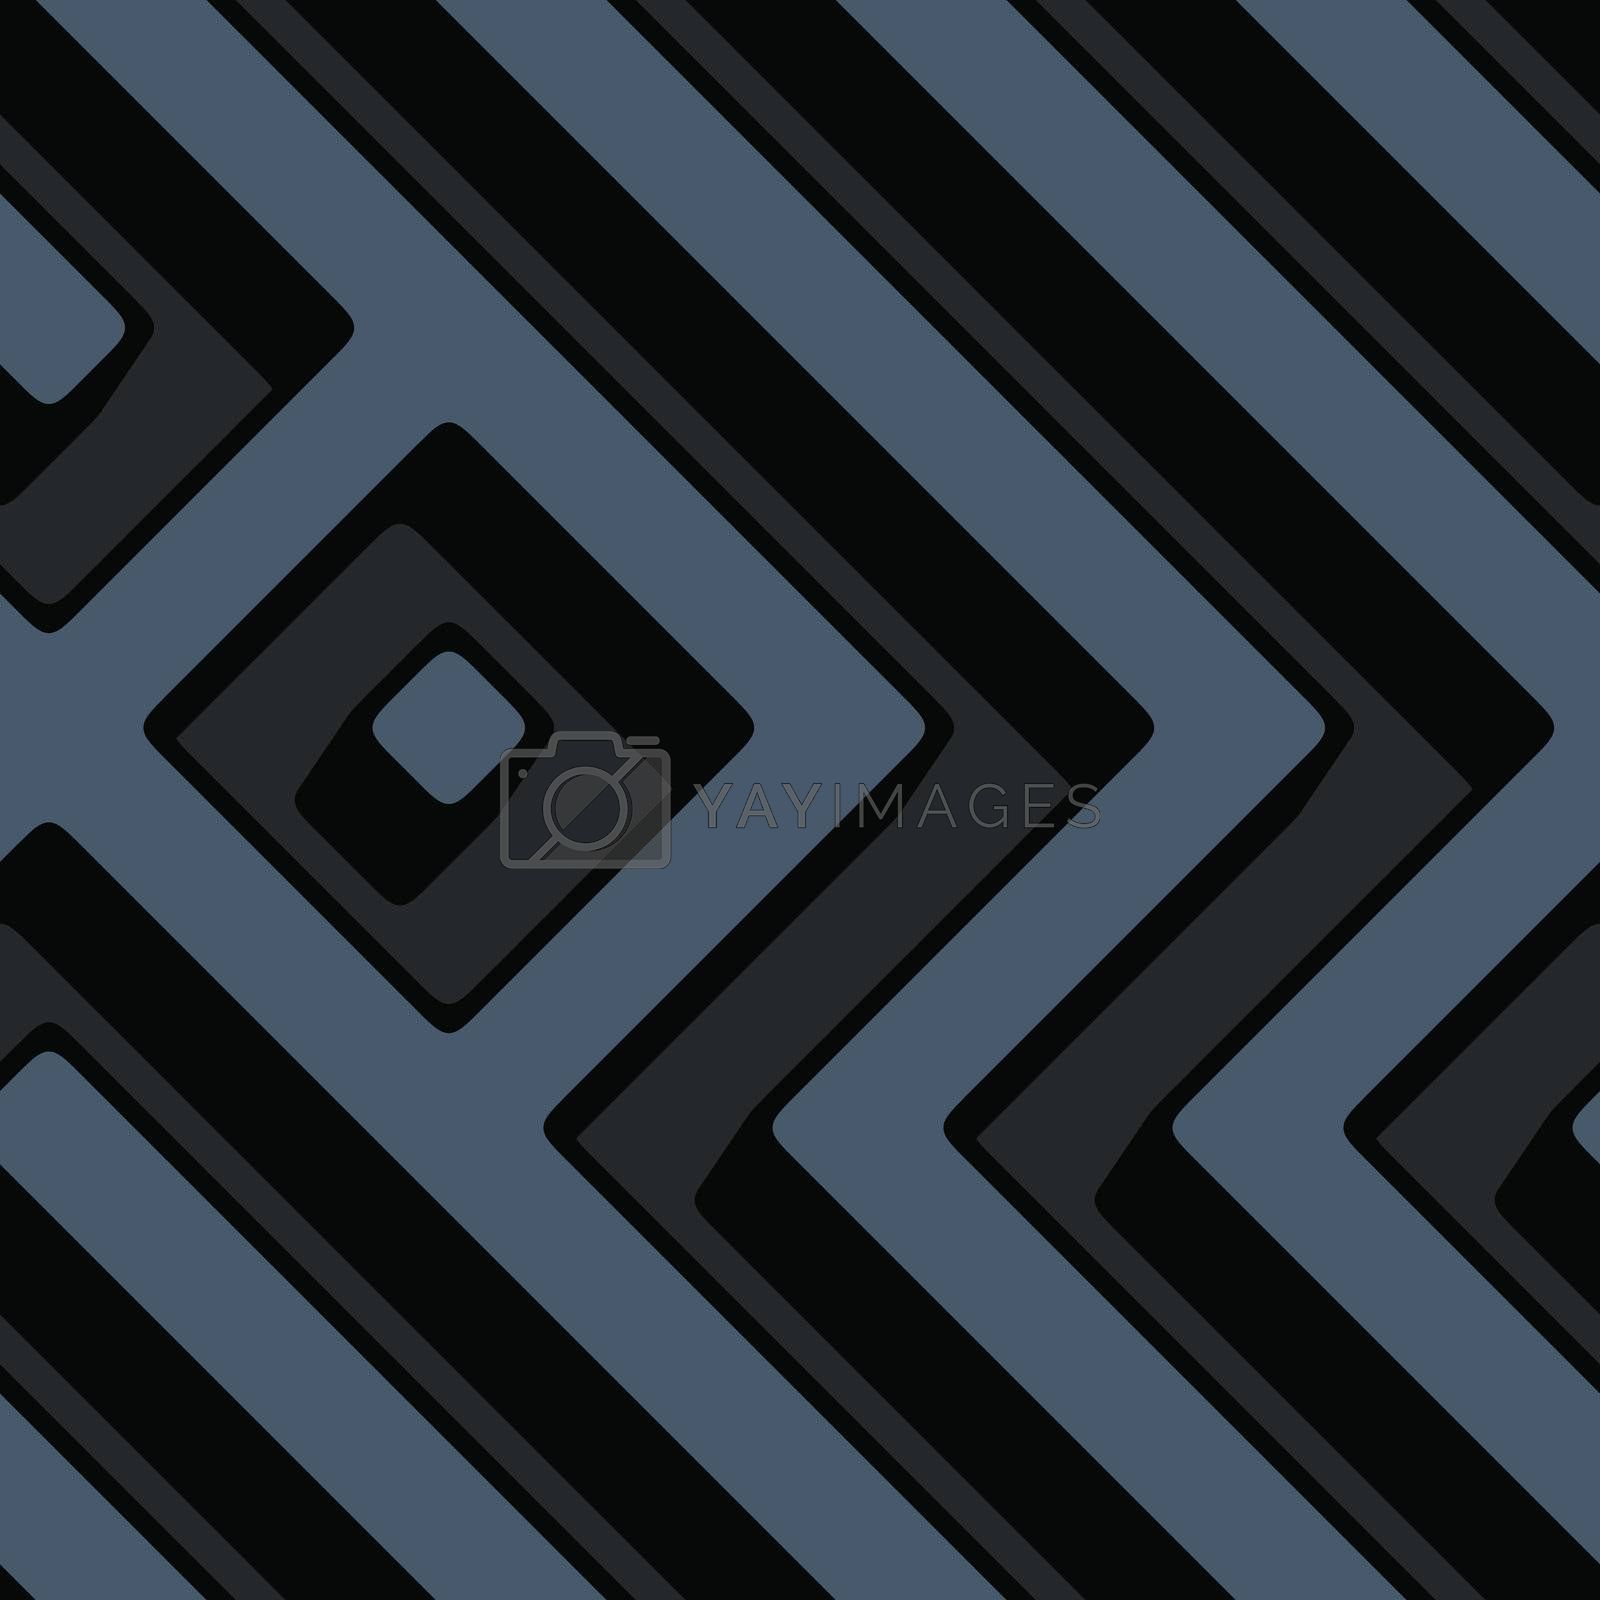 Royalty free image of Abstract geometric maze background by kgtoh